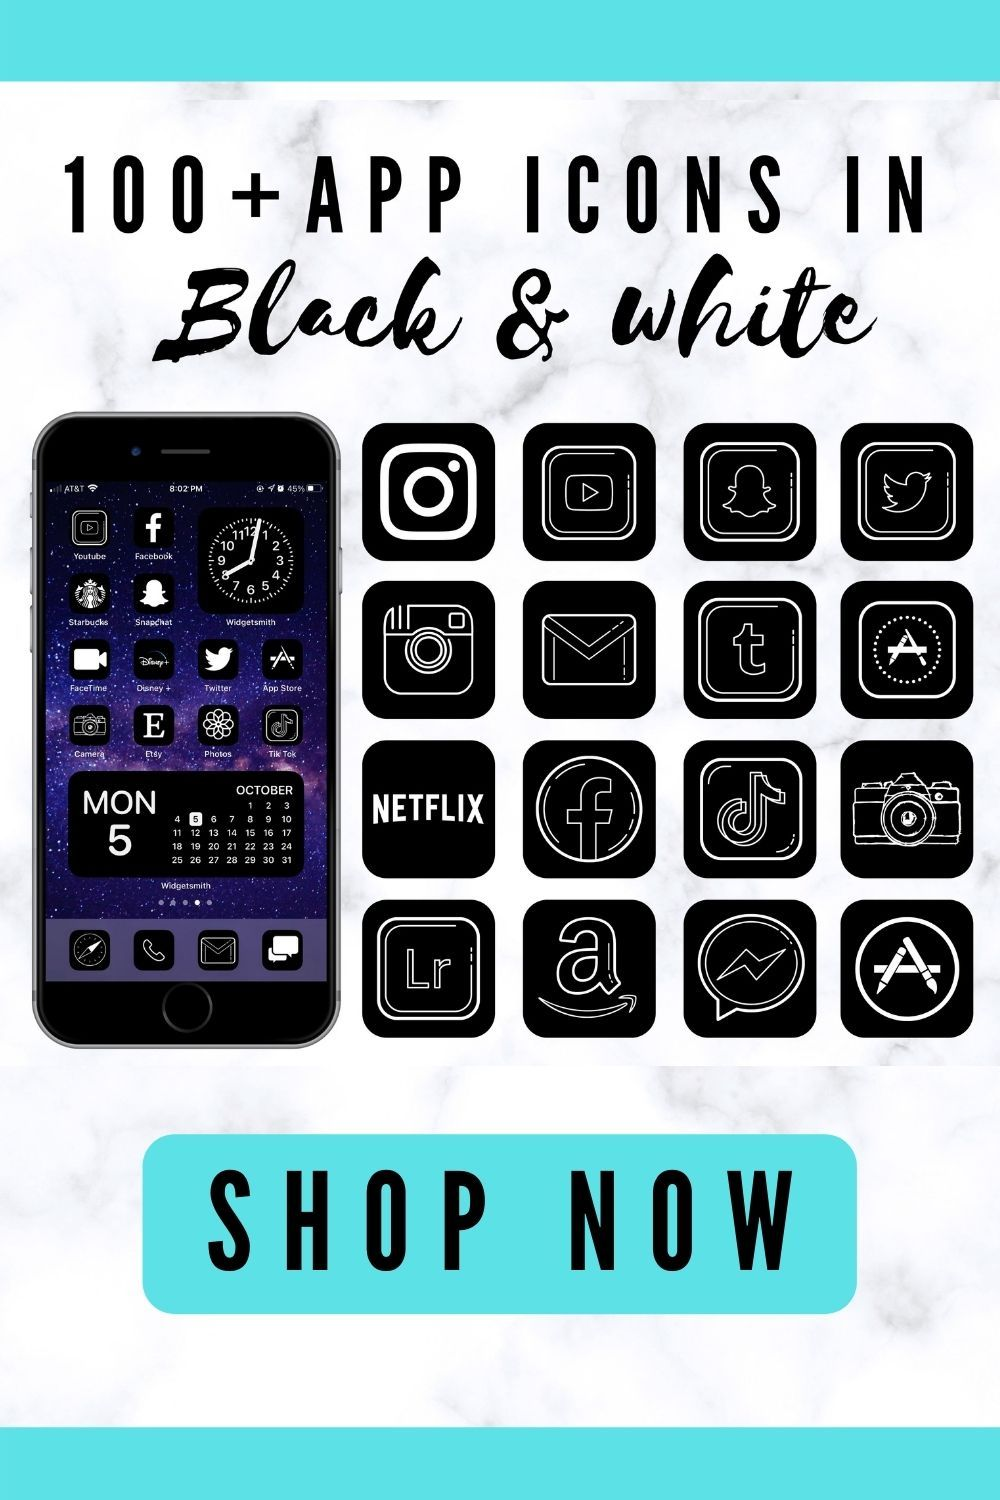 App icons black and white, iOS 14 home screen ideas for iPhone.